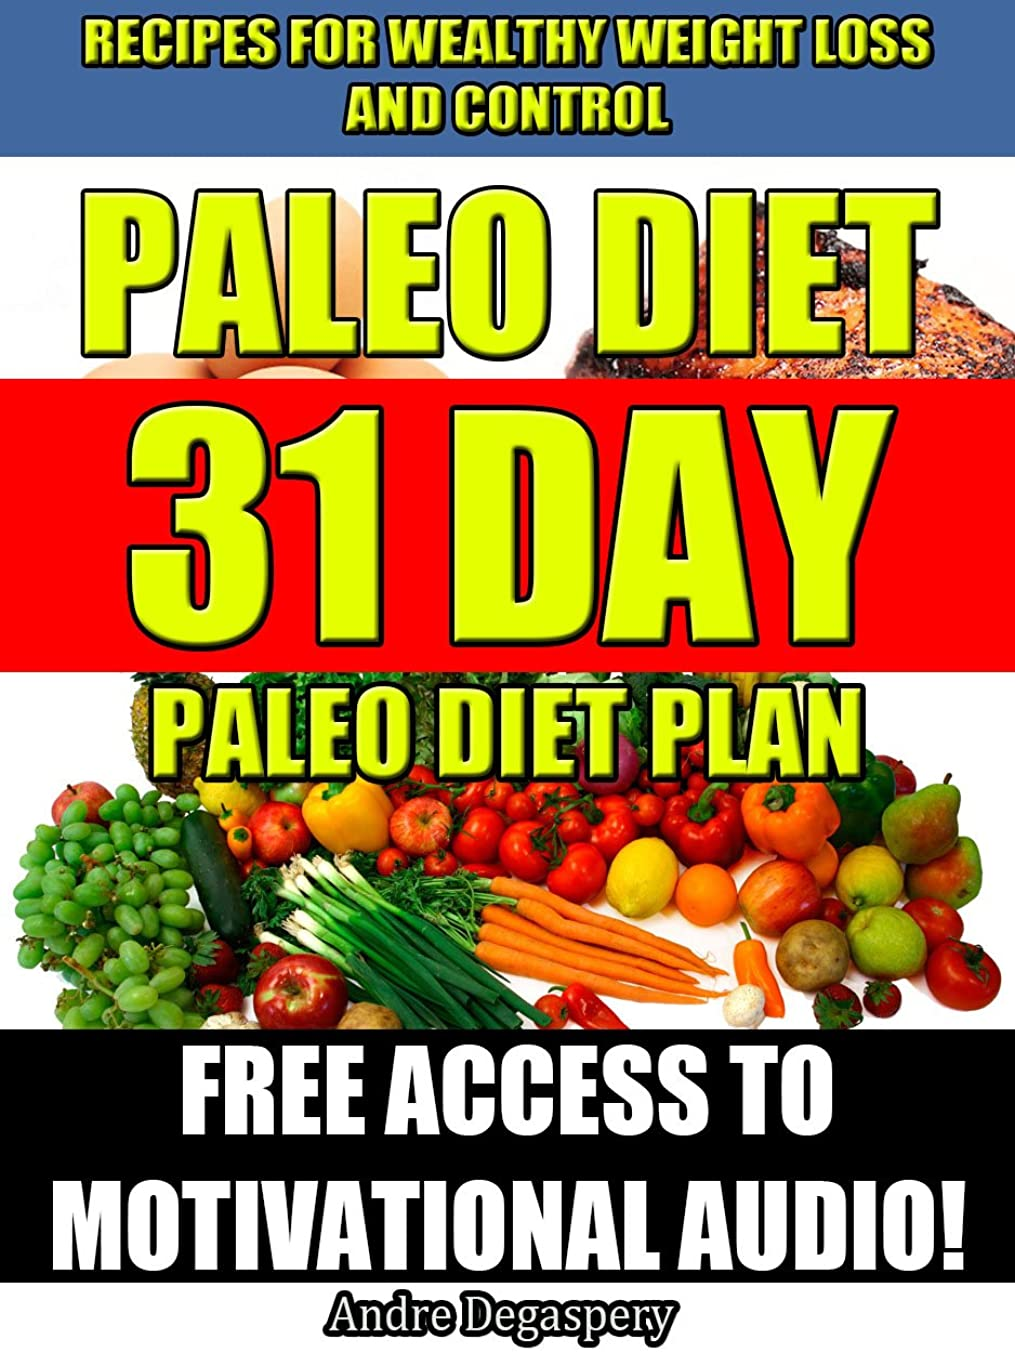 Paleo Diet:31 day paleo diet plan: Recipes for wealthy weight loss and control A MUST HAVE! Includes FREE Access to Motivational Audio to keep you motivated! (English Edition)